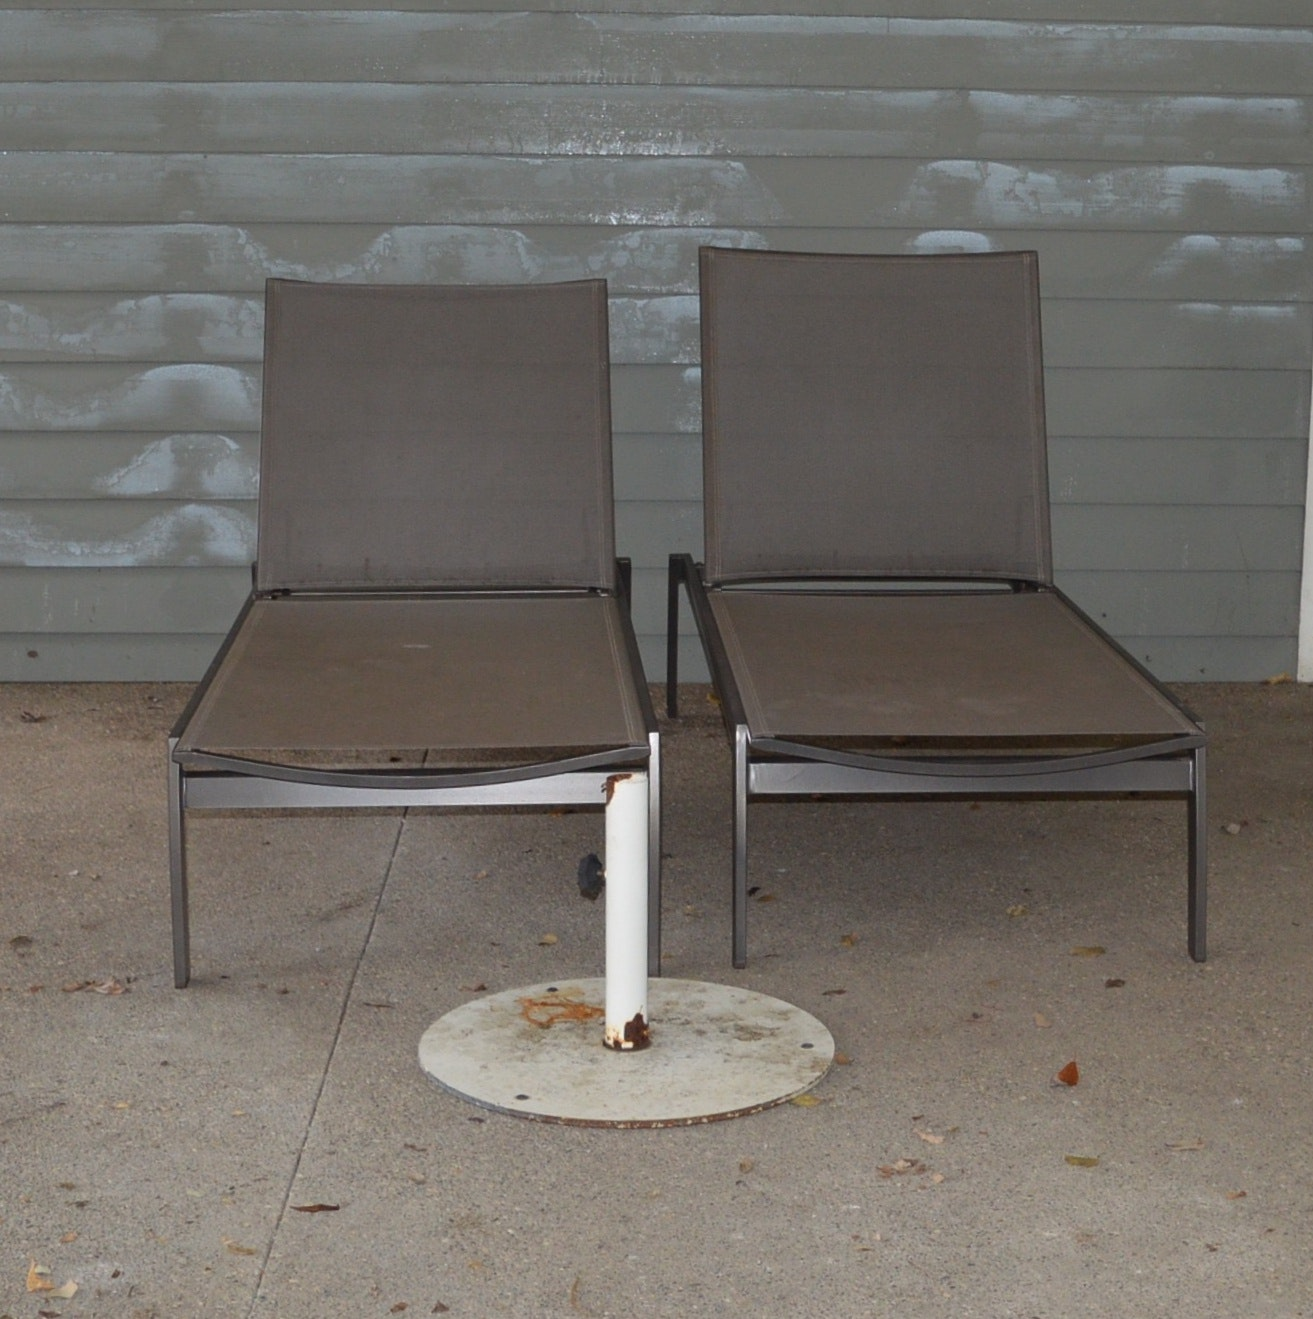 Frontgate Poolside Loungers and Umbrella Stand